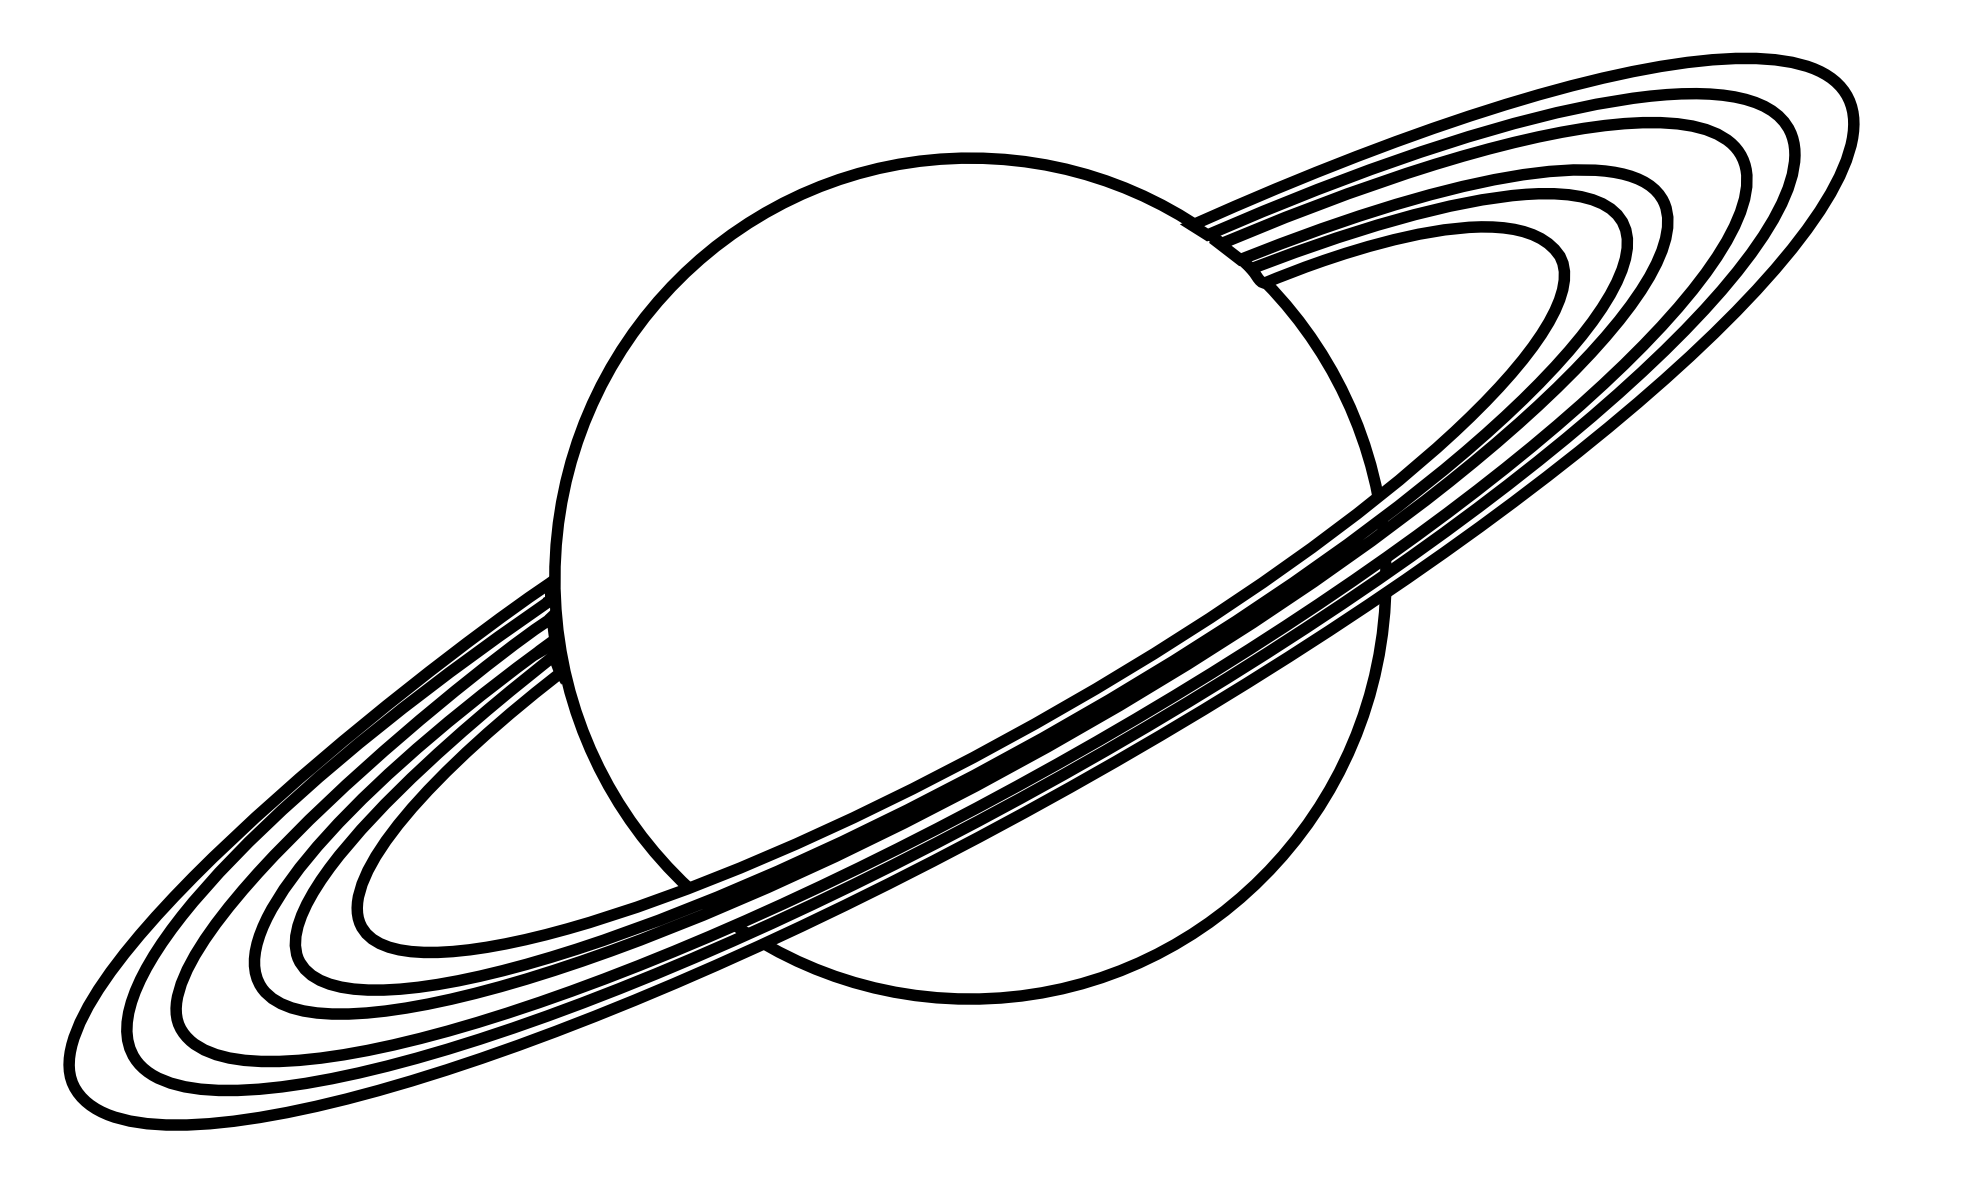 Drawing planets. Planet free download on